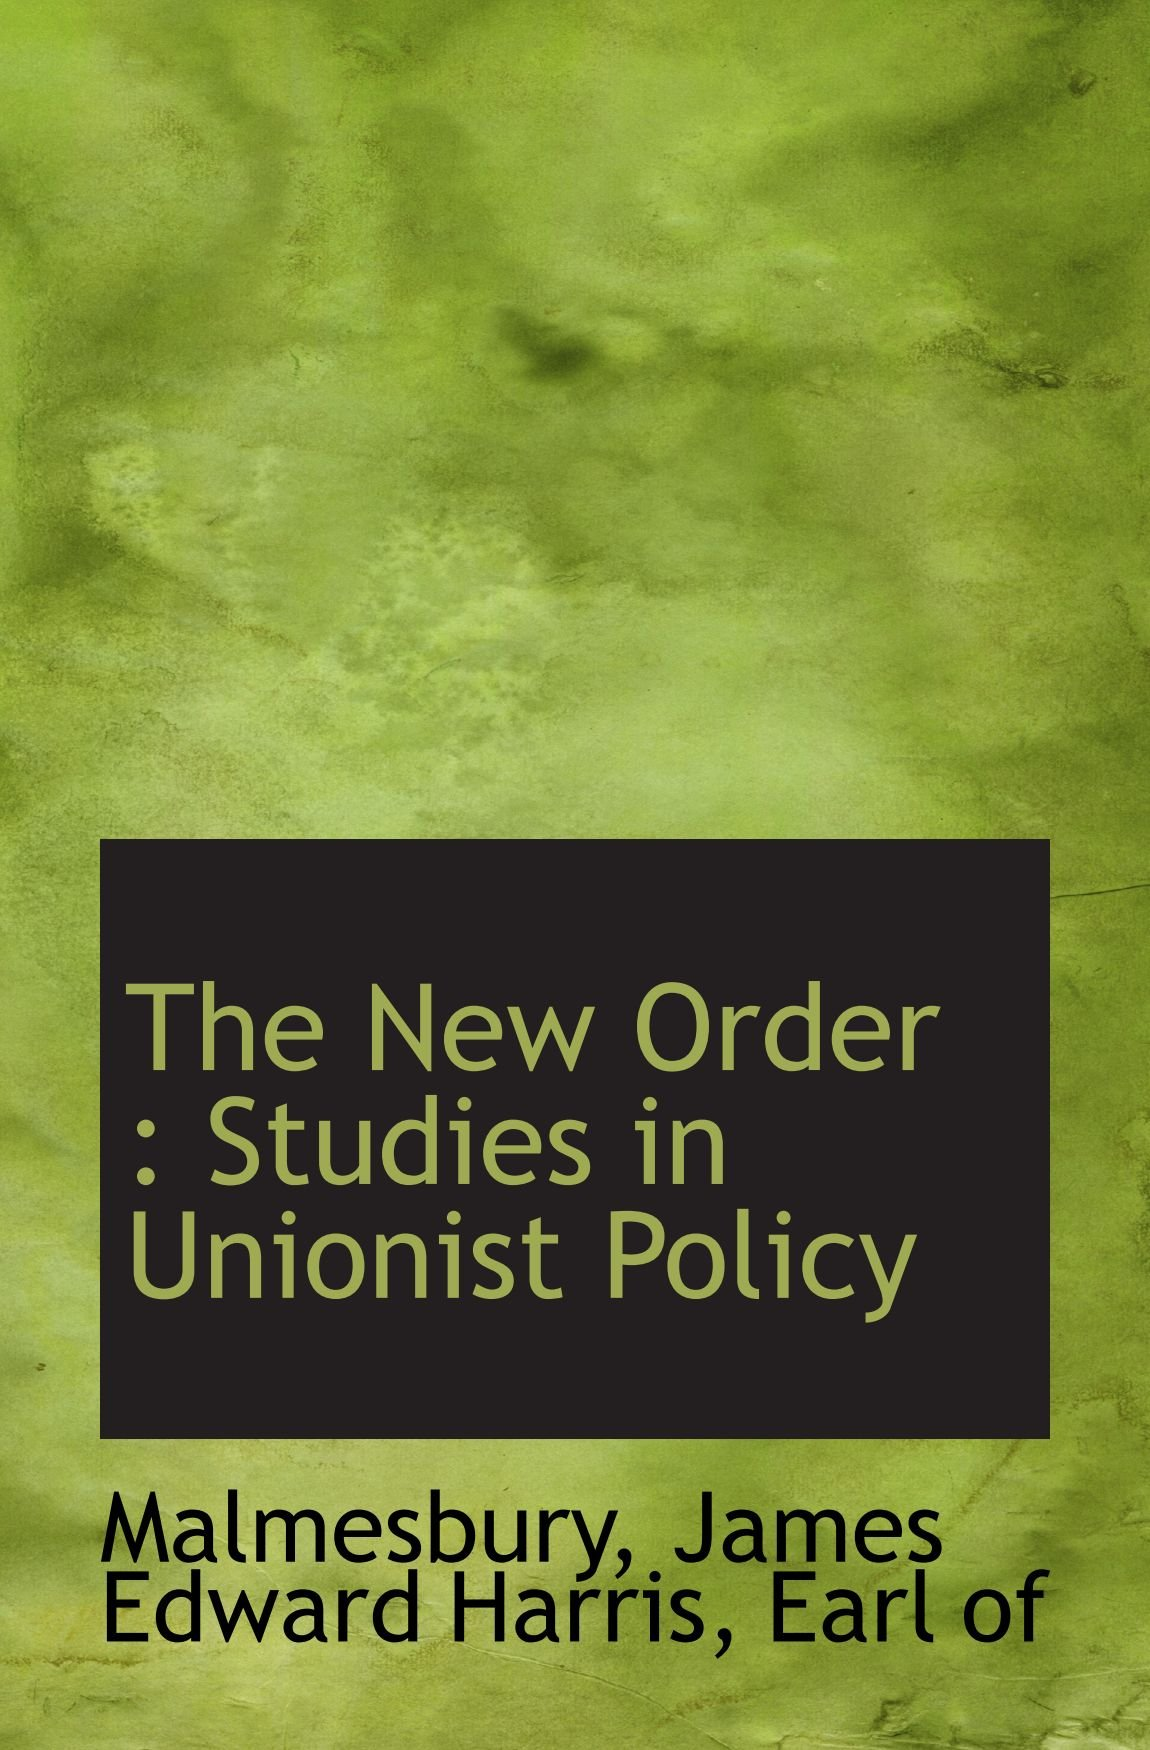 Download The New Order : Studies in Unionist Policy ebook